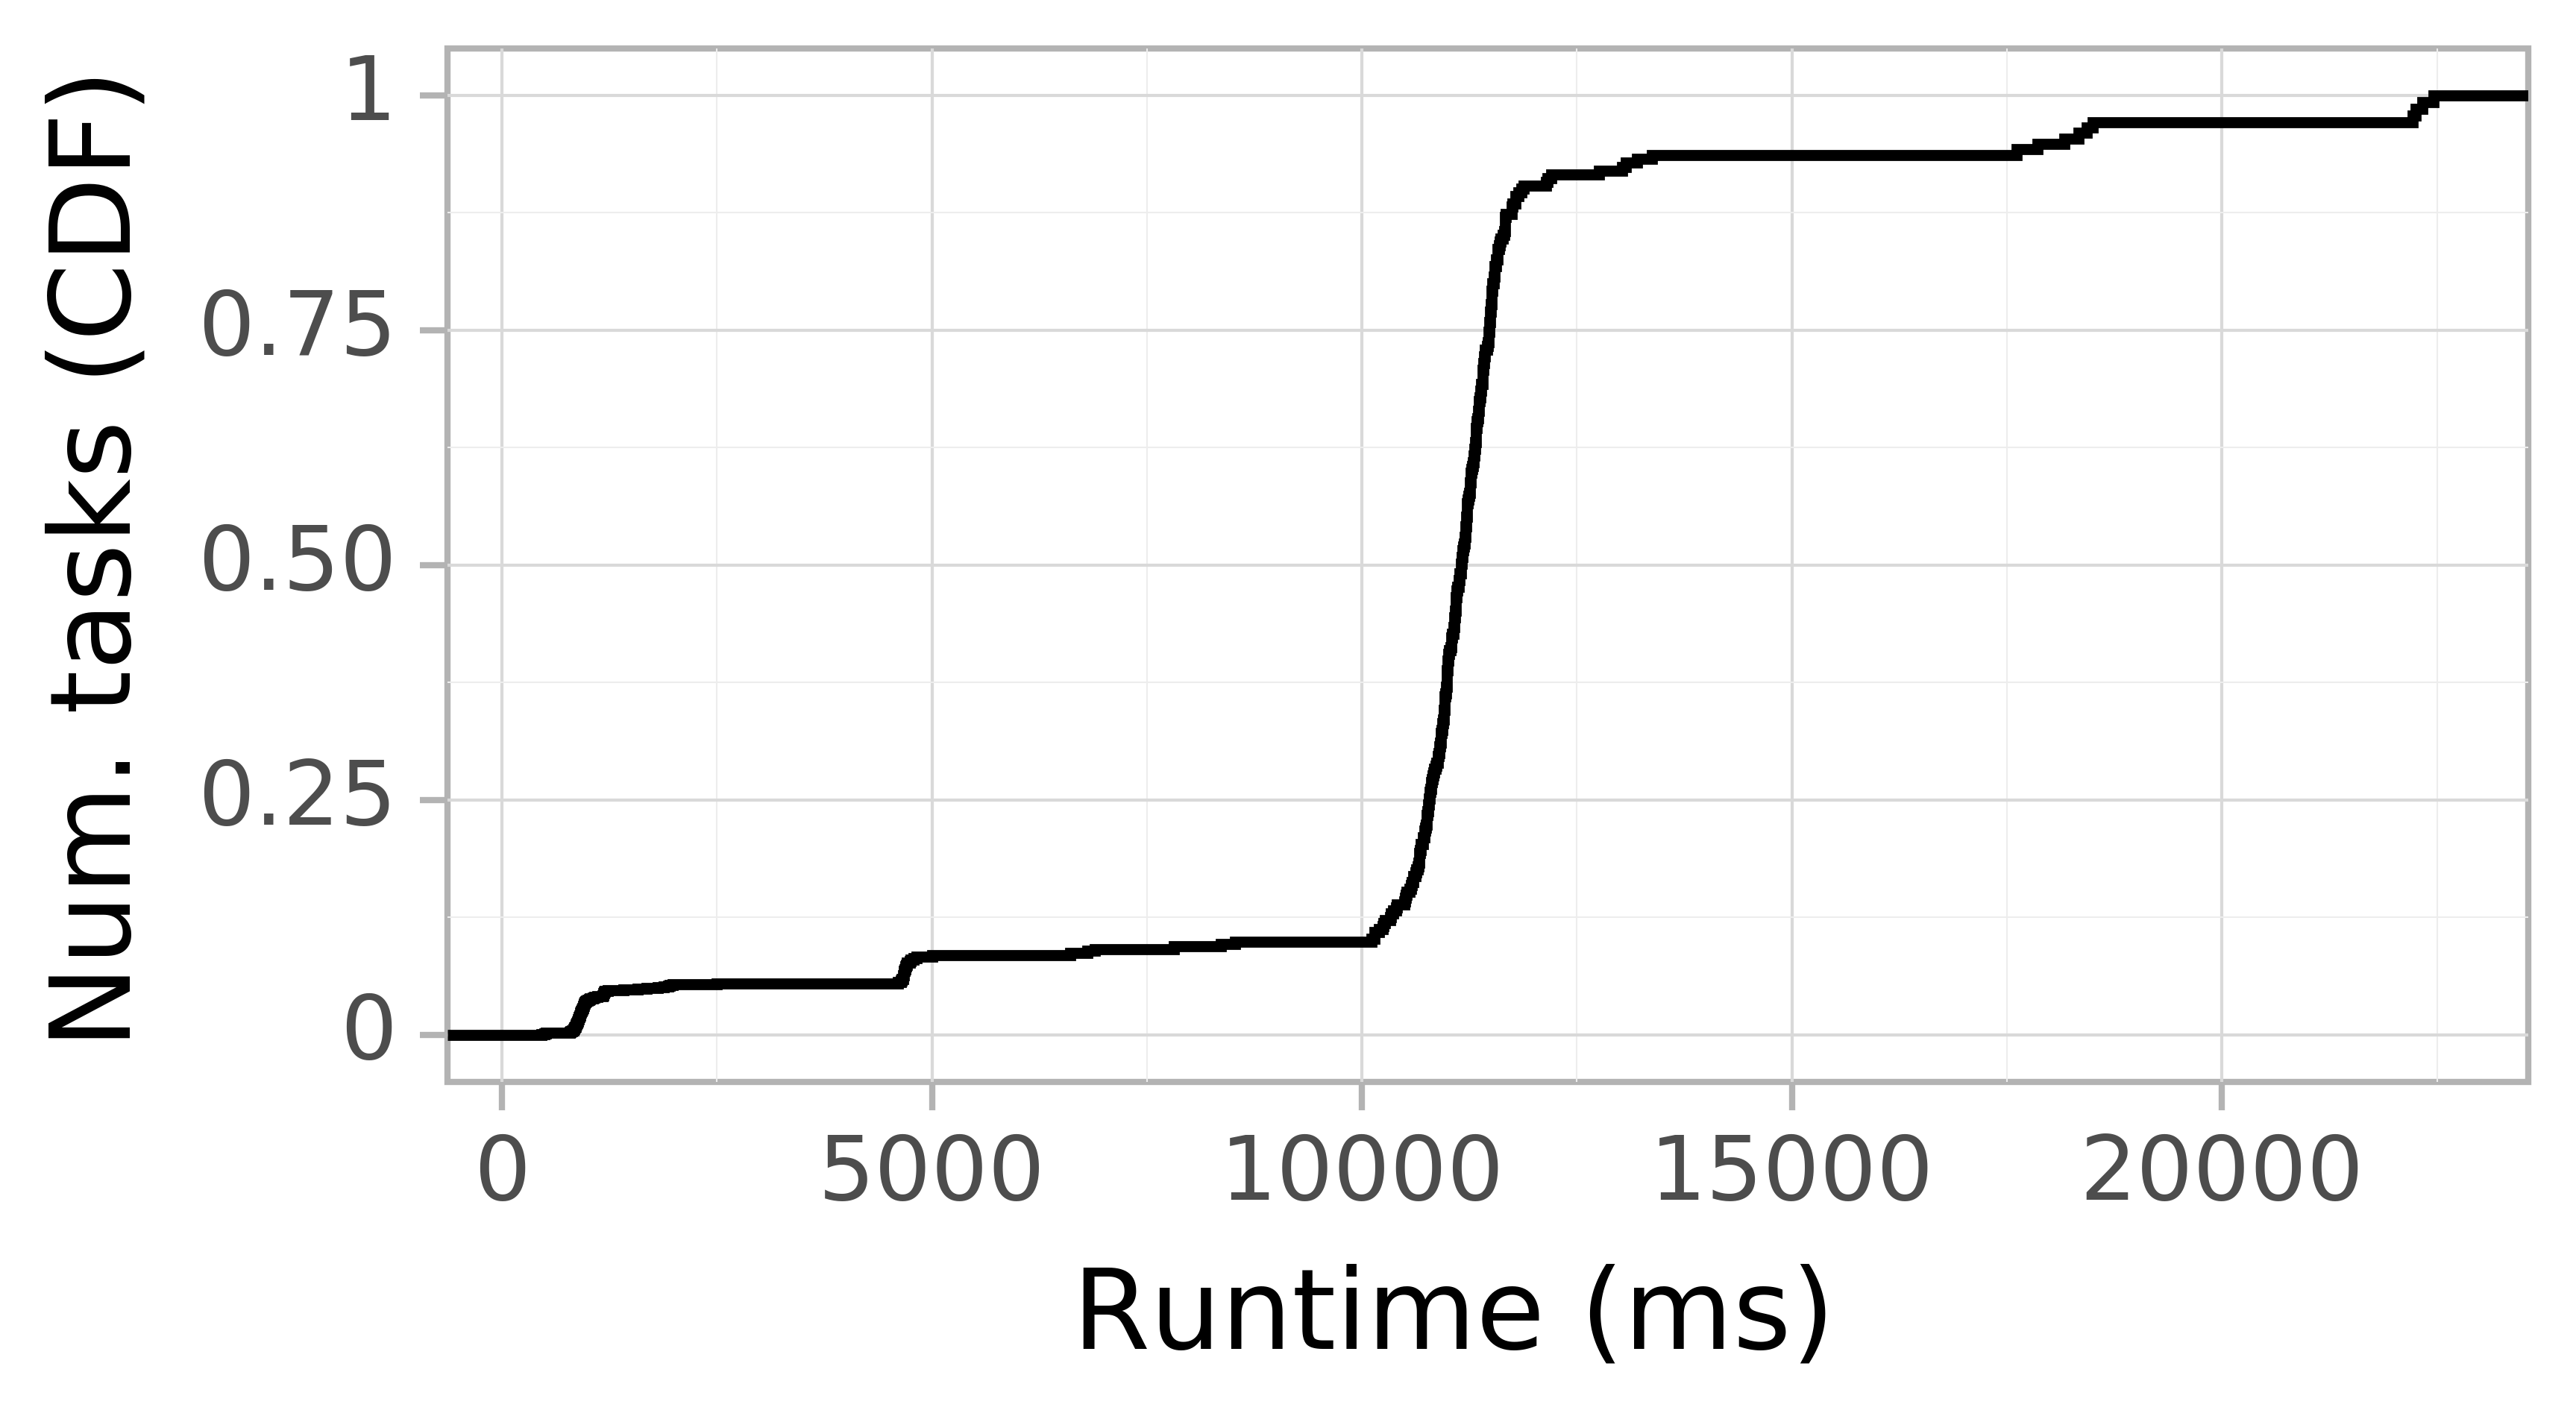 Task runtime CDF graph for the askalon-new_ee44 trace.